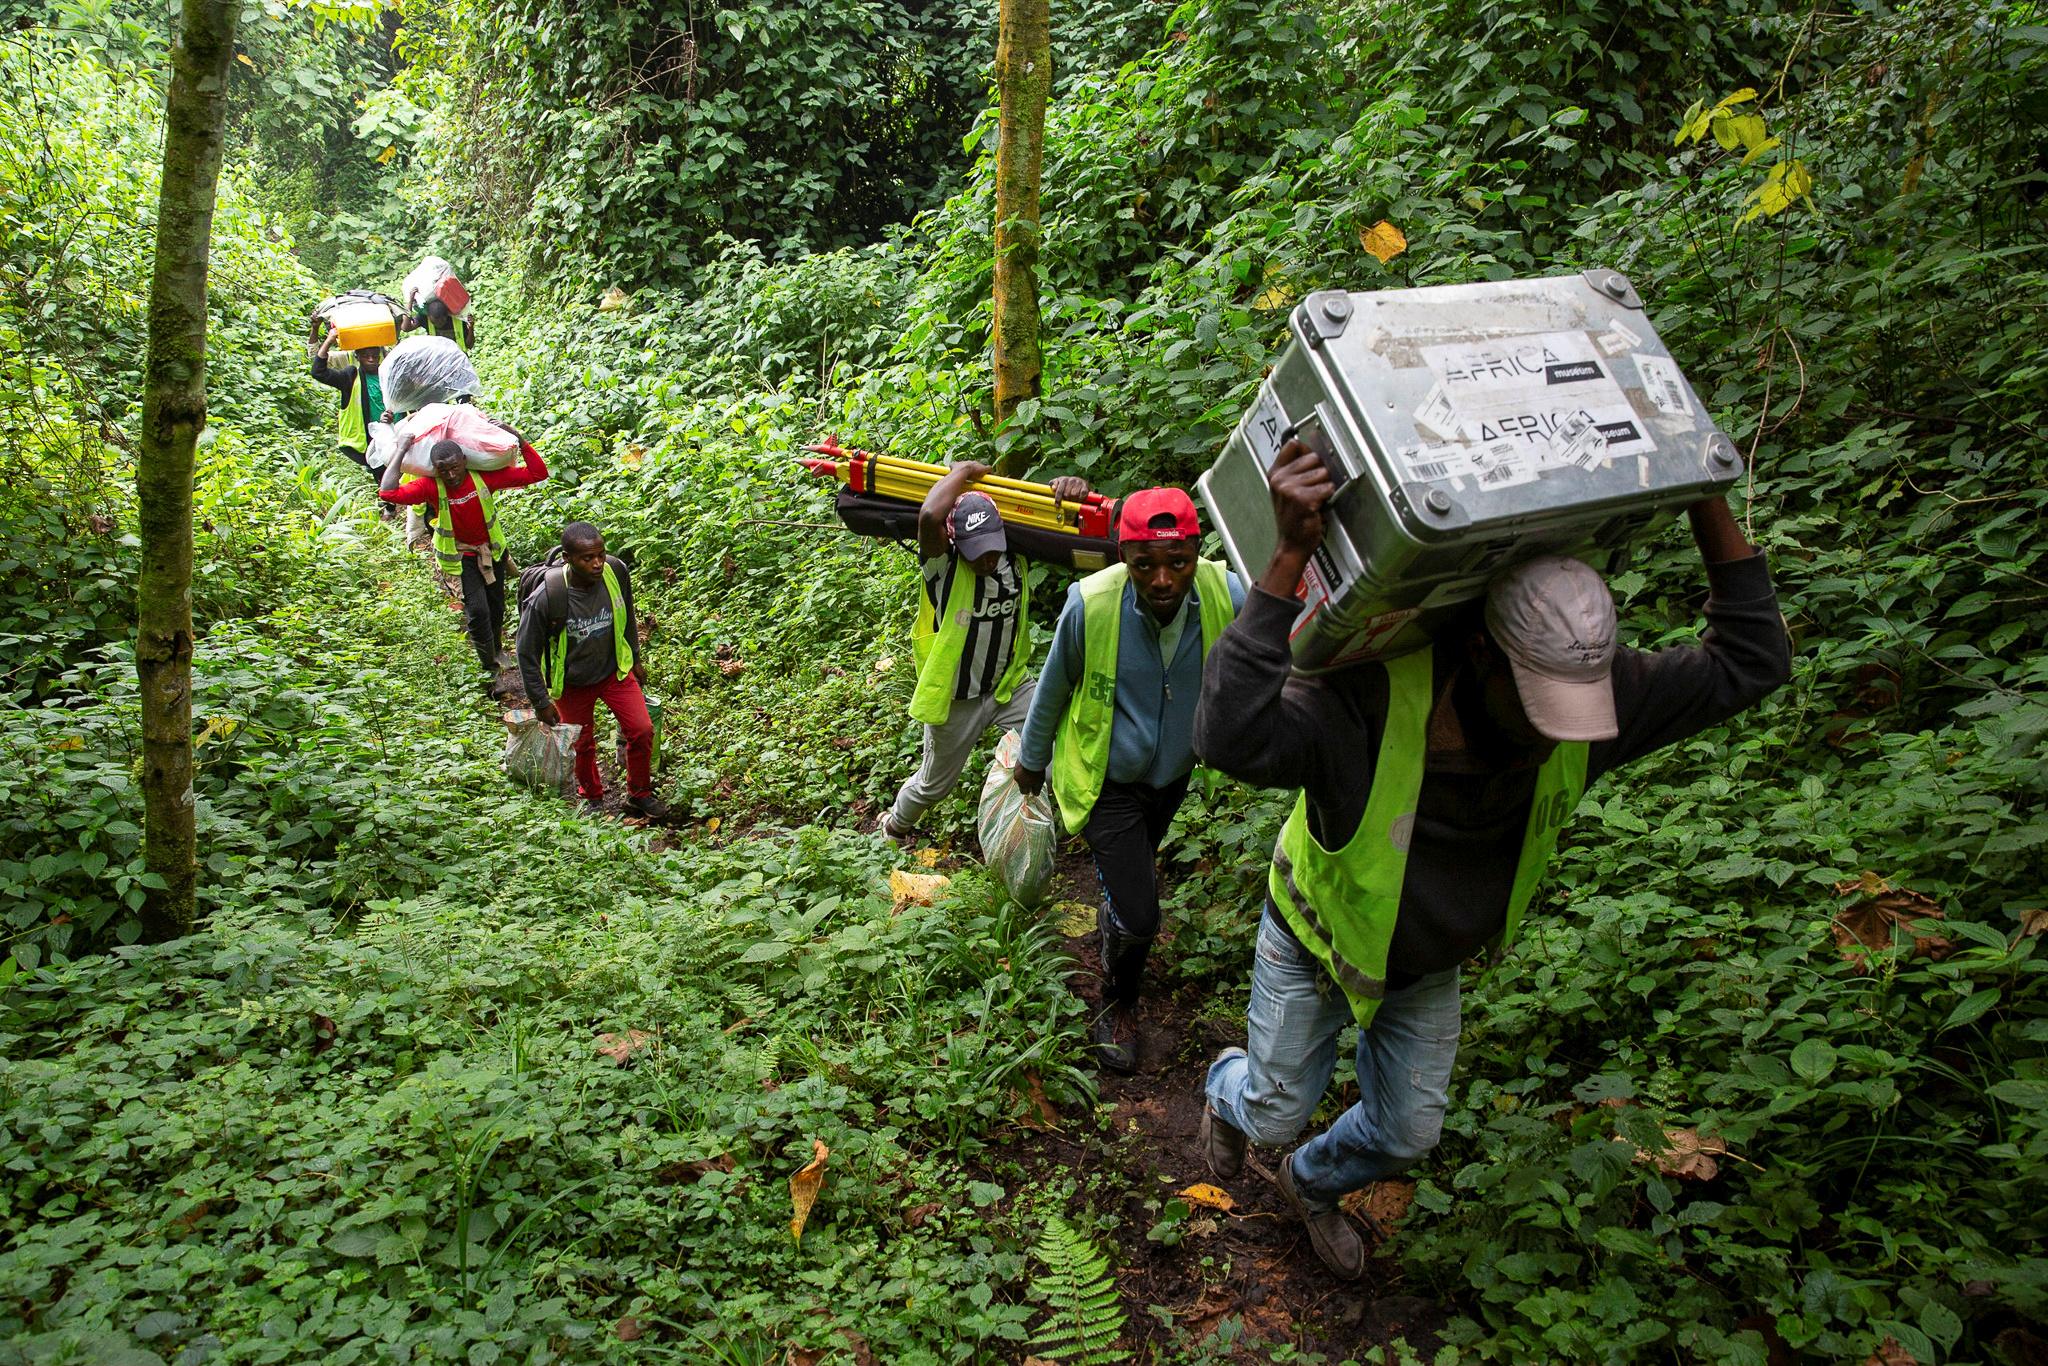 Congolese porters carry scientific equipment up Mount Nyiragongo volcano, inside the Virunga National Park, near Goma, in the eastern Democratic Republic of Congo February 11, 2021. REUTERS/Hereward Holland